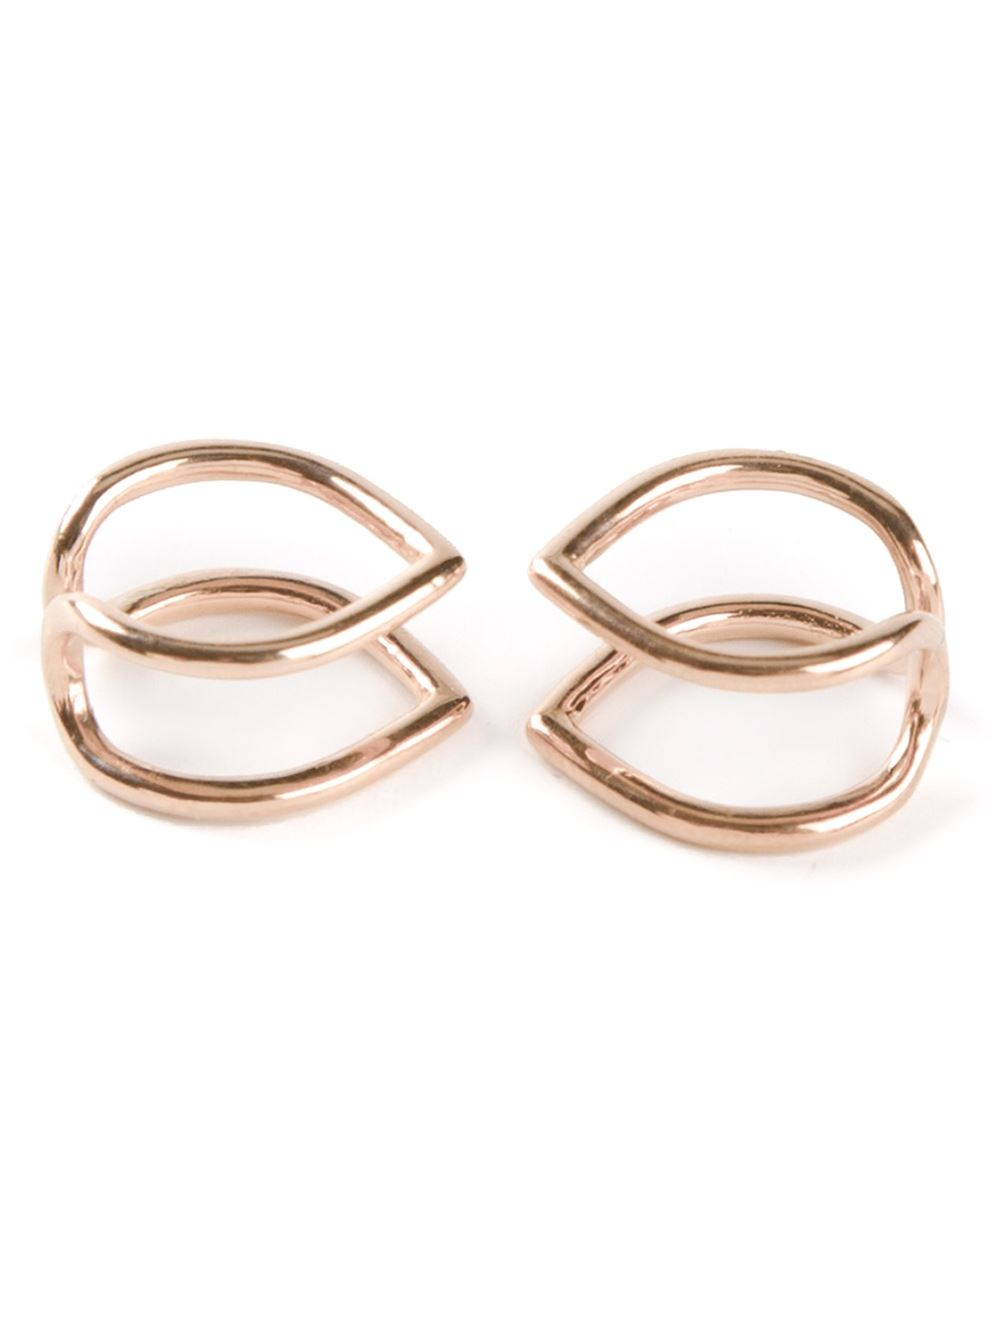 coops london small pointed double hoop squeeze on earrings. Black Bedroom Furniture Sets. Home Design Ideas